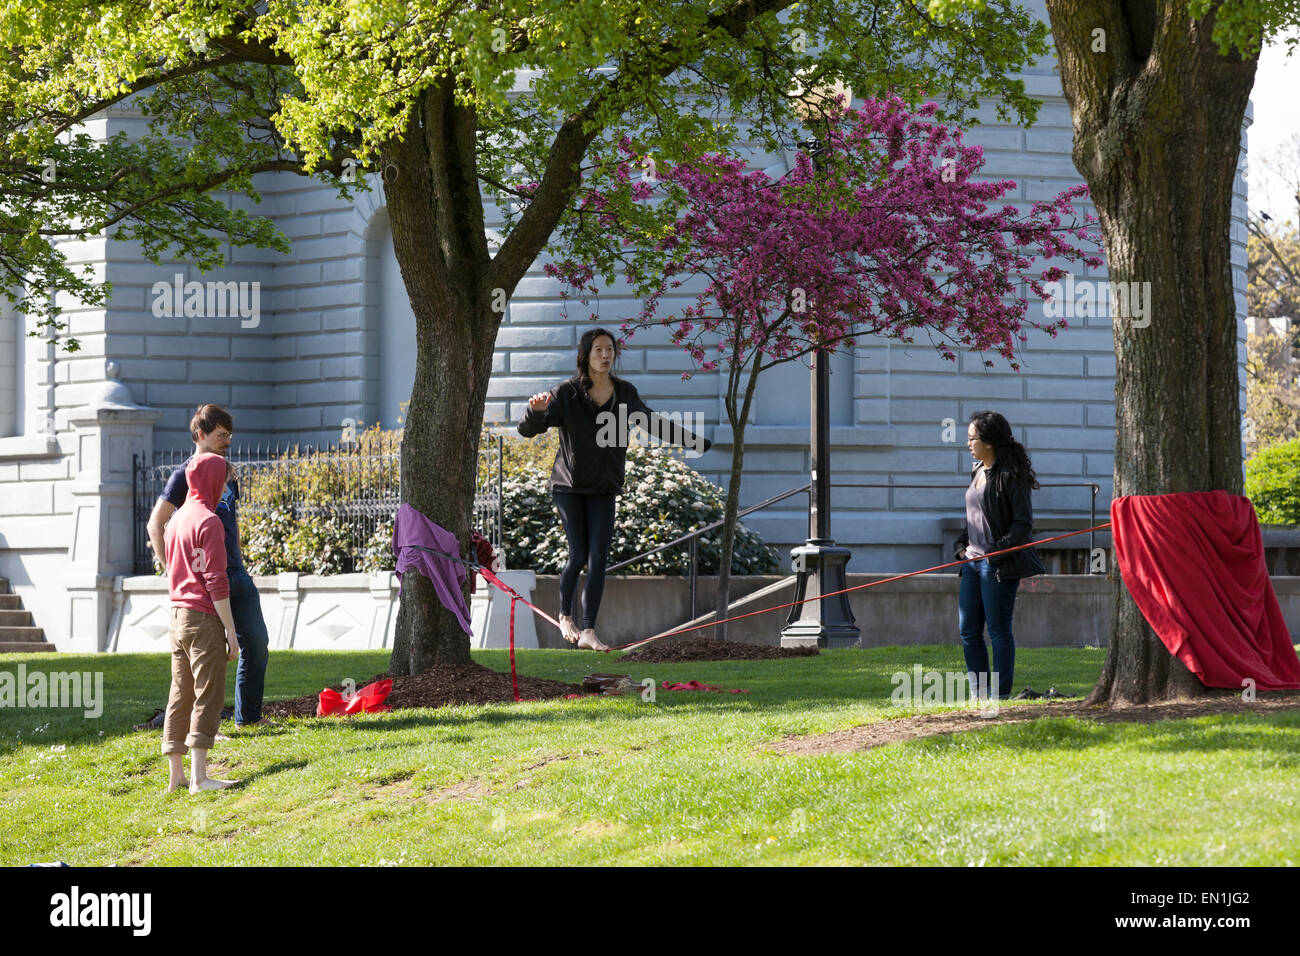 Group of friends slacklining at Cal Anderson Park - Seattle, King County, Washington, USA - Stock Image